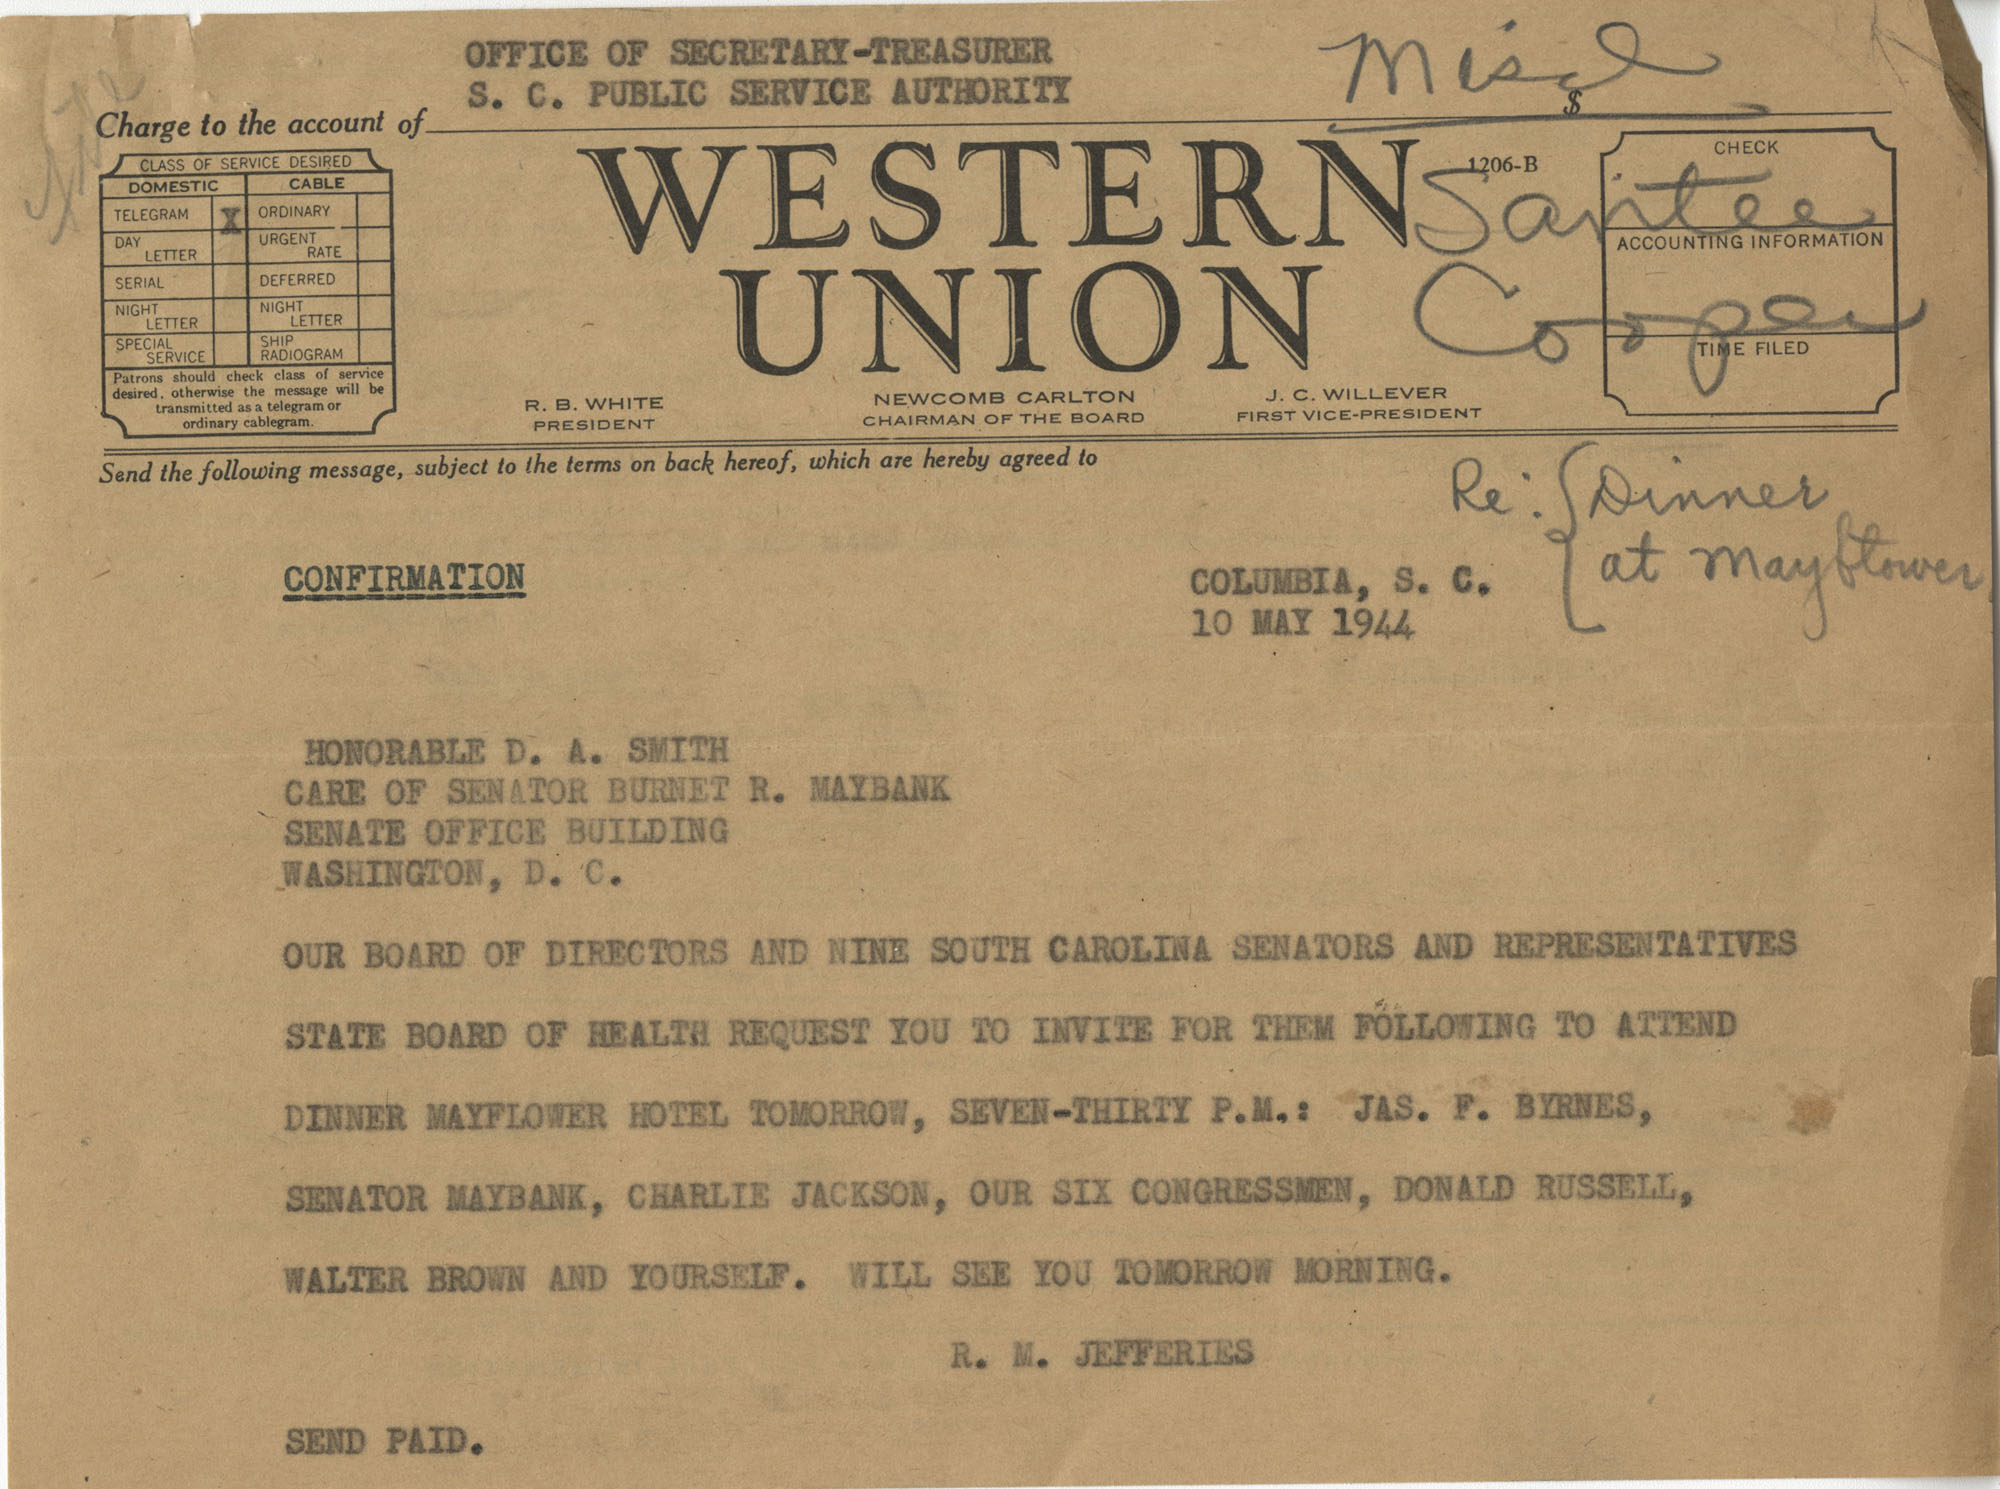 Santee-Cooper: Telegram from Richard M. Jefferies (General Counsel of the South Carolina Public Service Authority) to Senator D. A. Smith, May 10, 1944